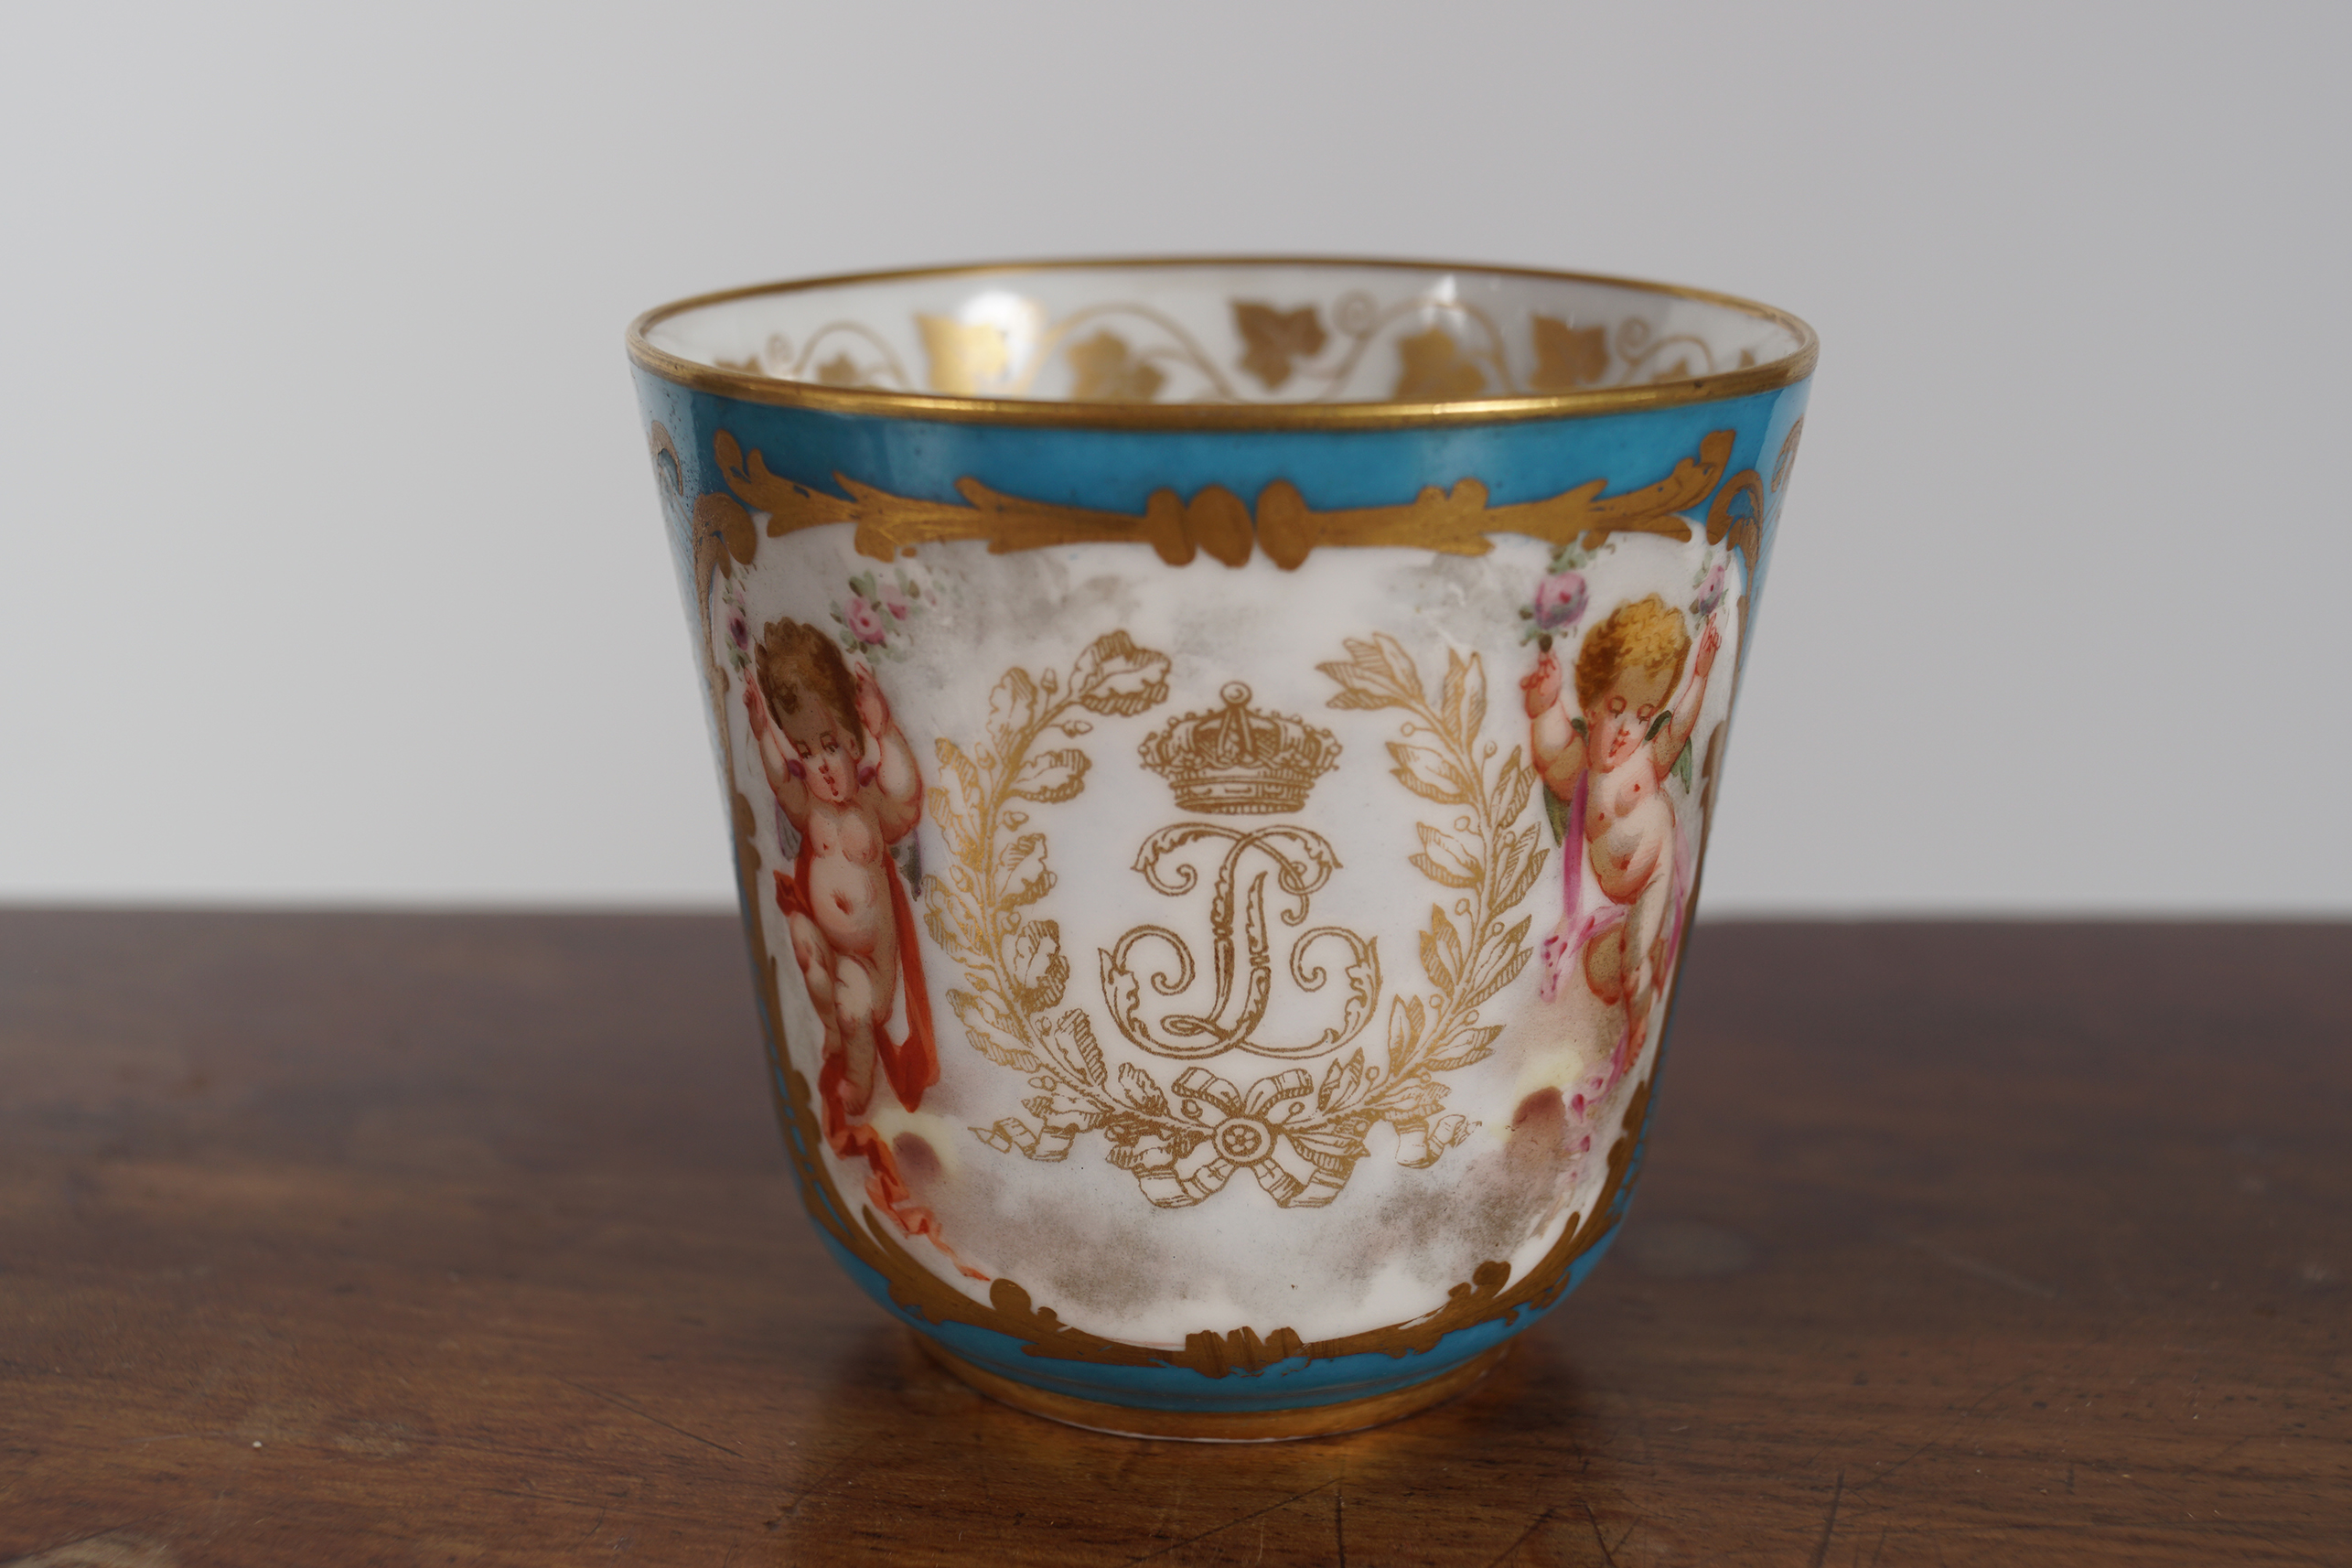 19TH-CENTURY SEVRES CUP - Image 2 of 3